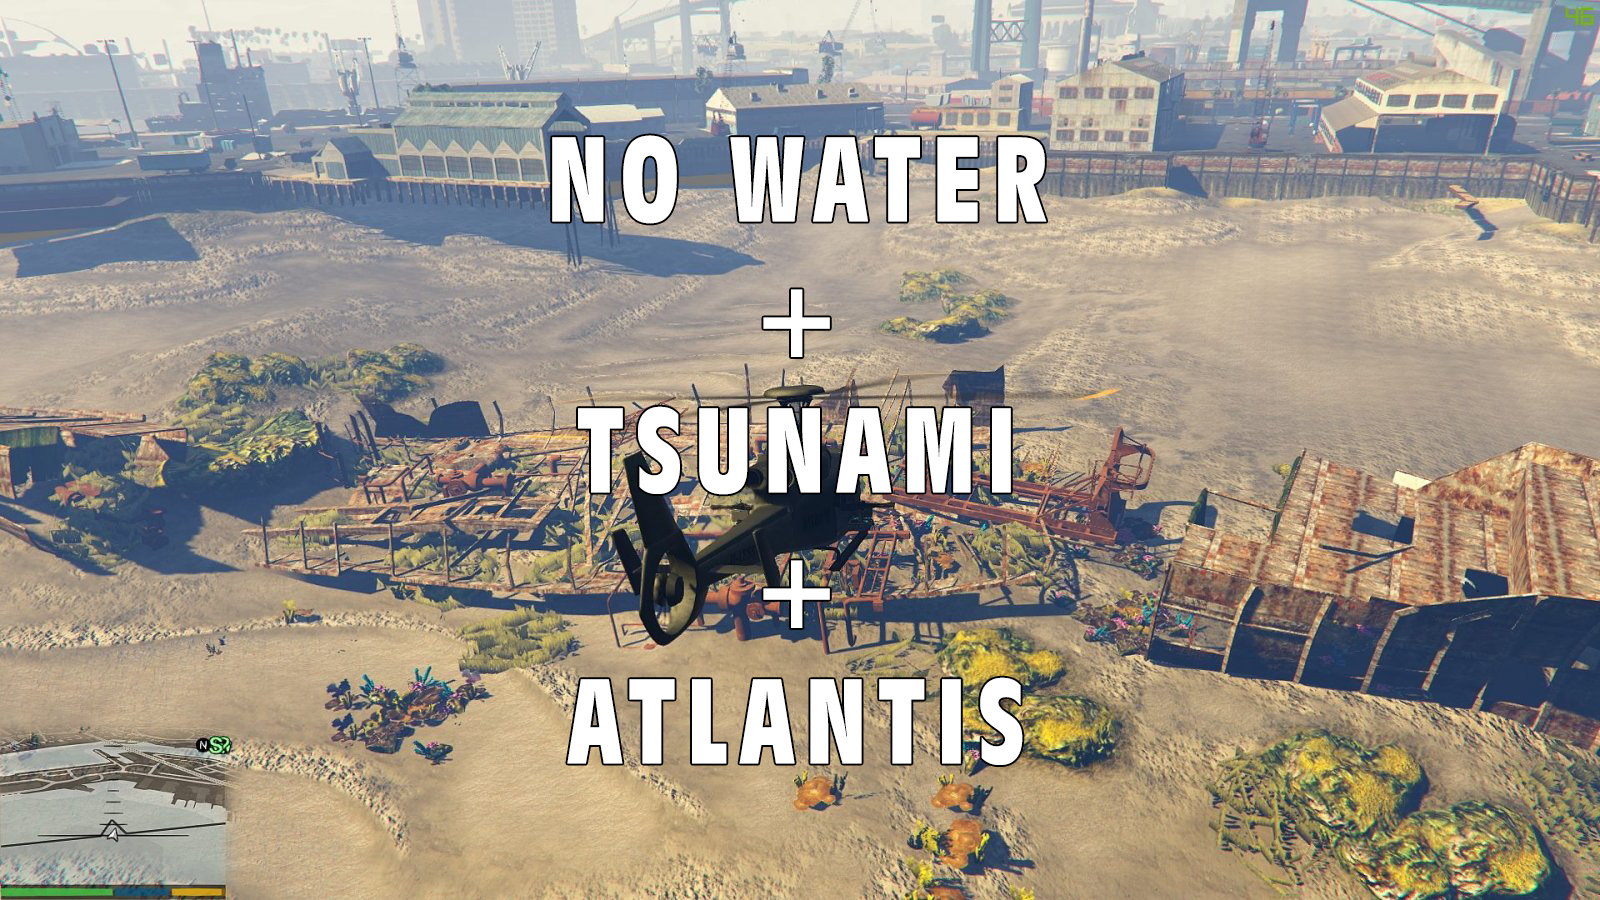 Tsunami/No Water